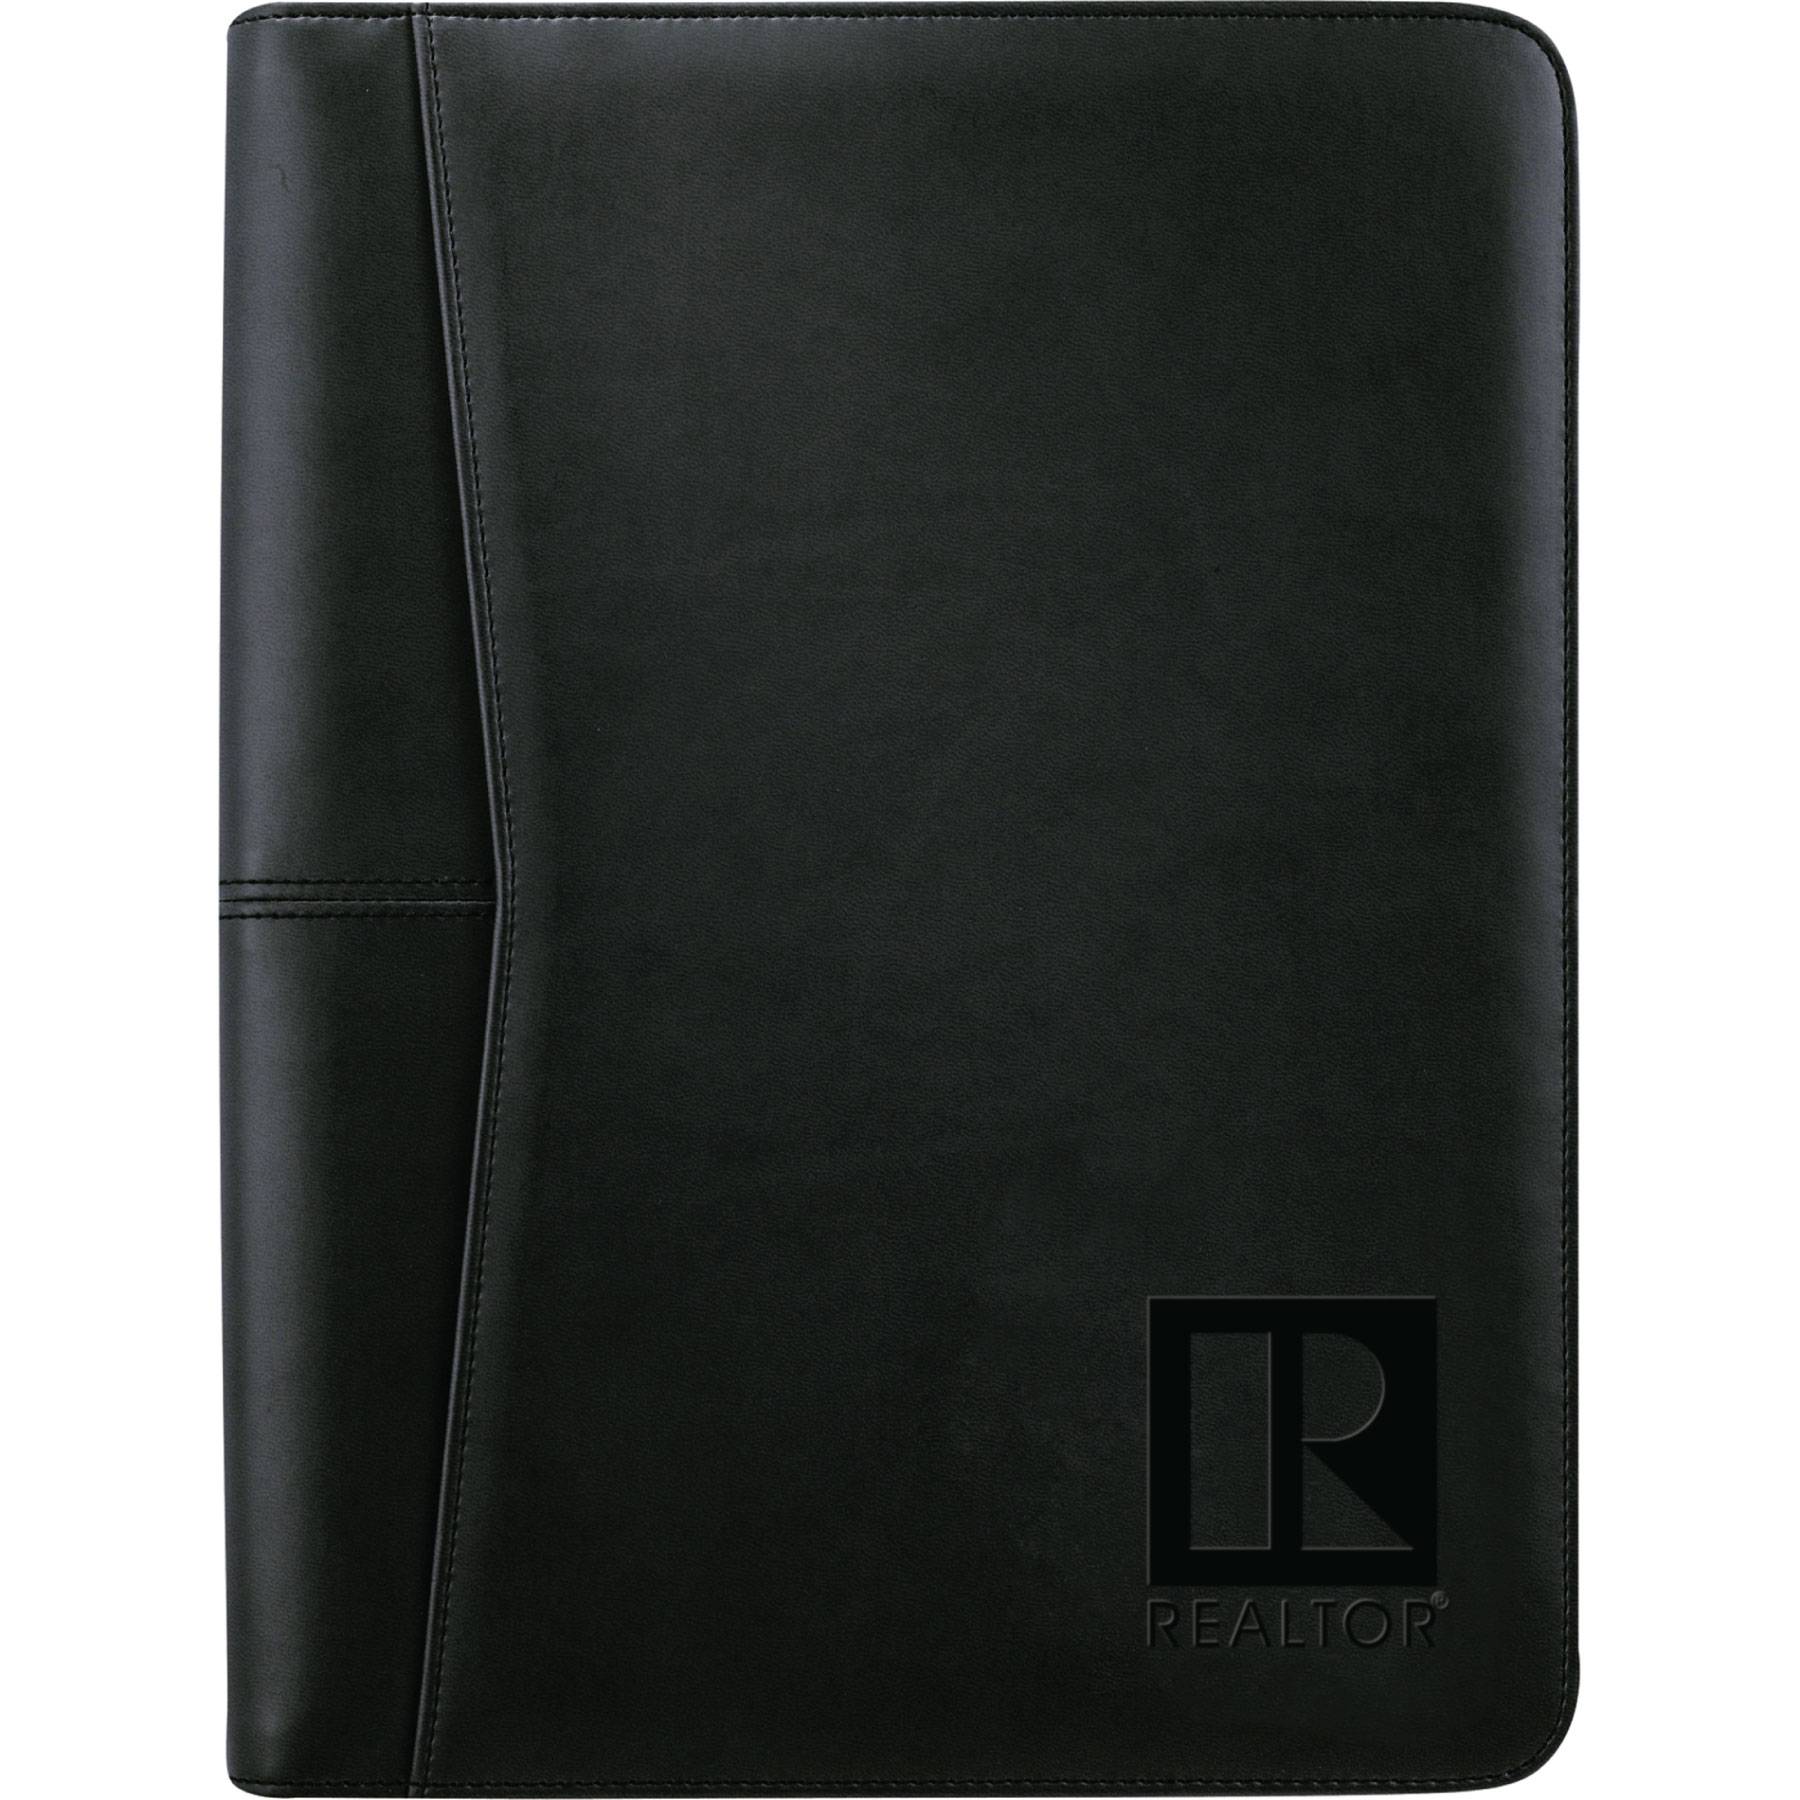 Soft Feel Writing Pad Journals,Books,Folders,Padfolios,Moleskins,Binders,Desks,Organizers,Notebook